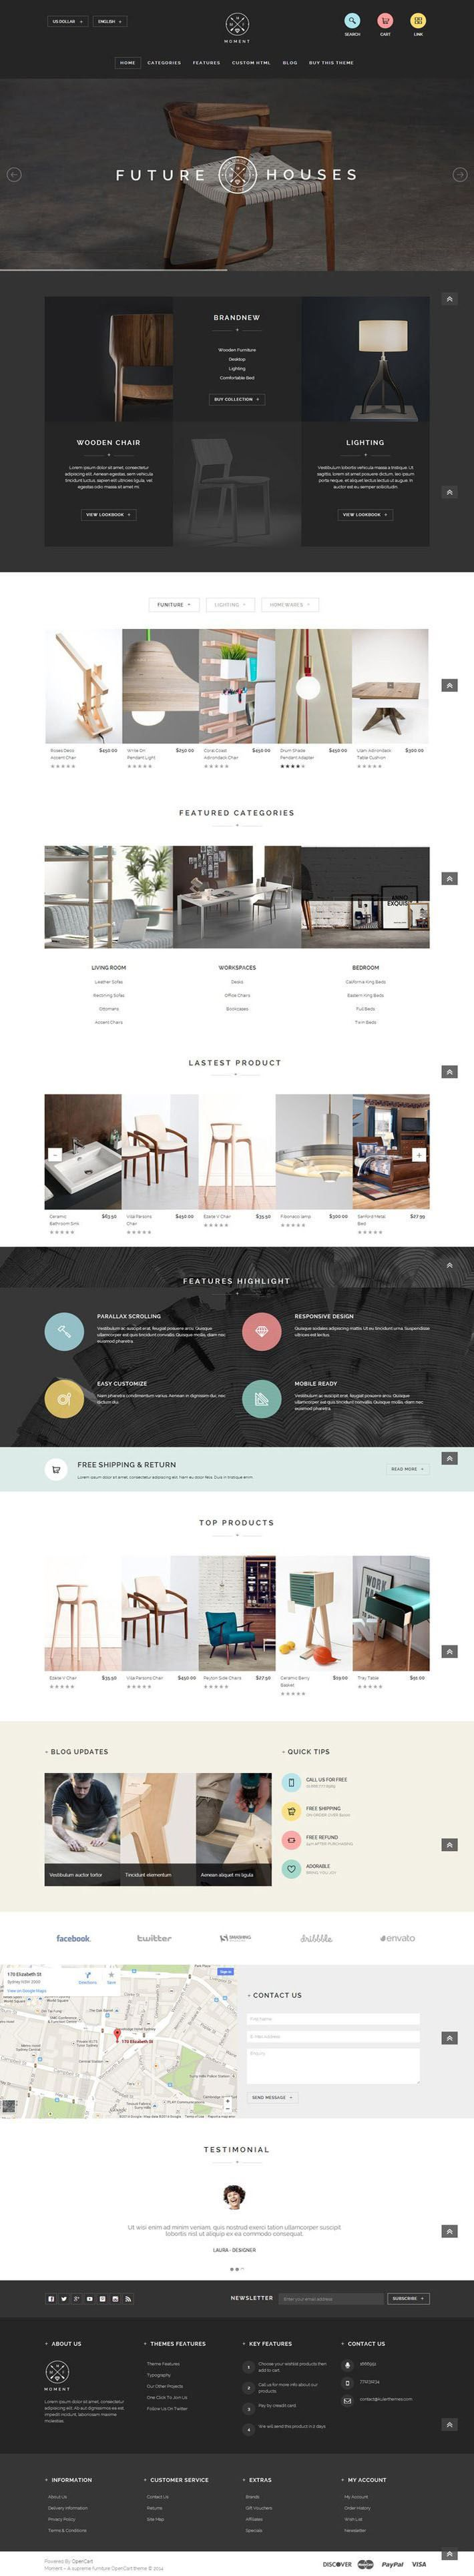 Clean Web design inspiration 2015 will be listed below. Designs are minimal, unique, fine and attractive as you would like to have one of them for your use